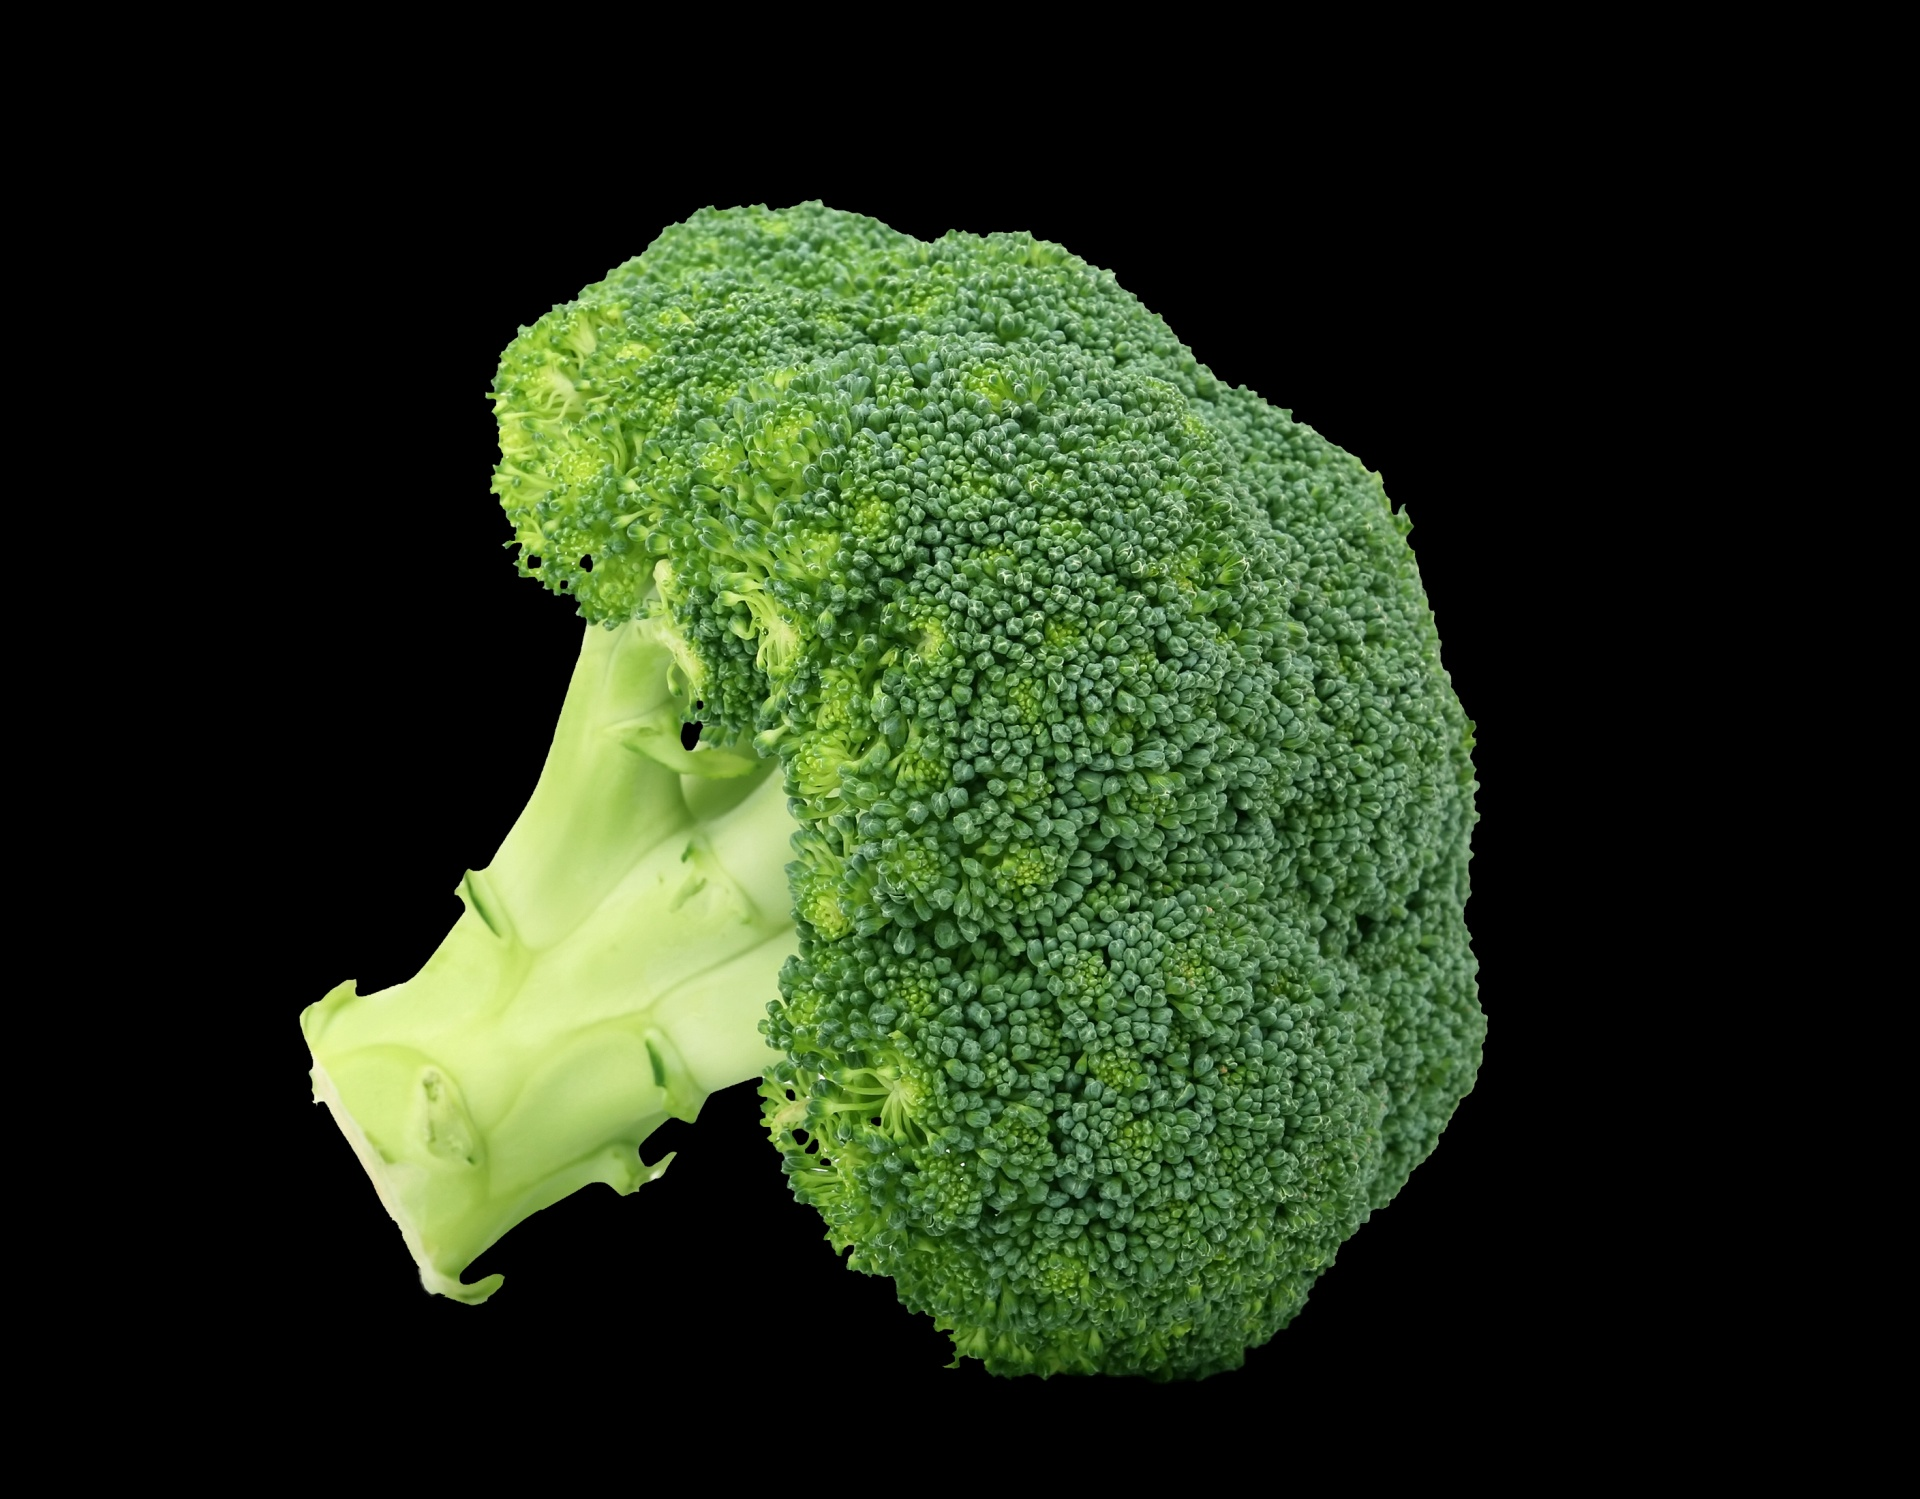 broccoli-on-black-background